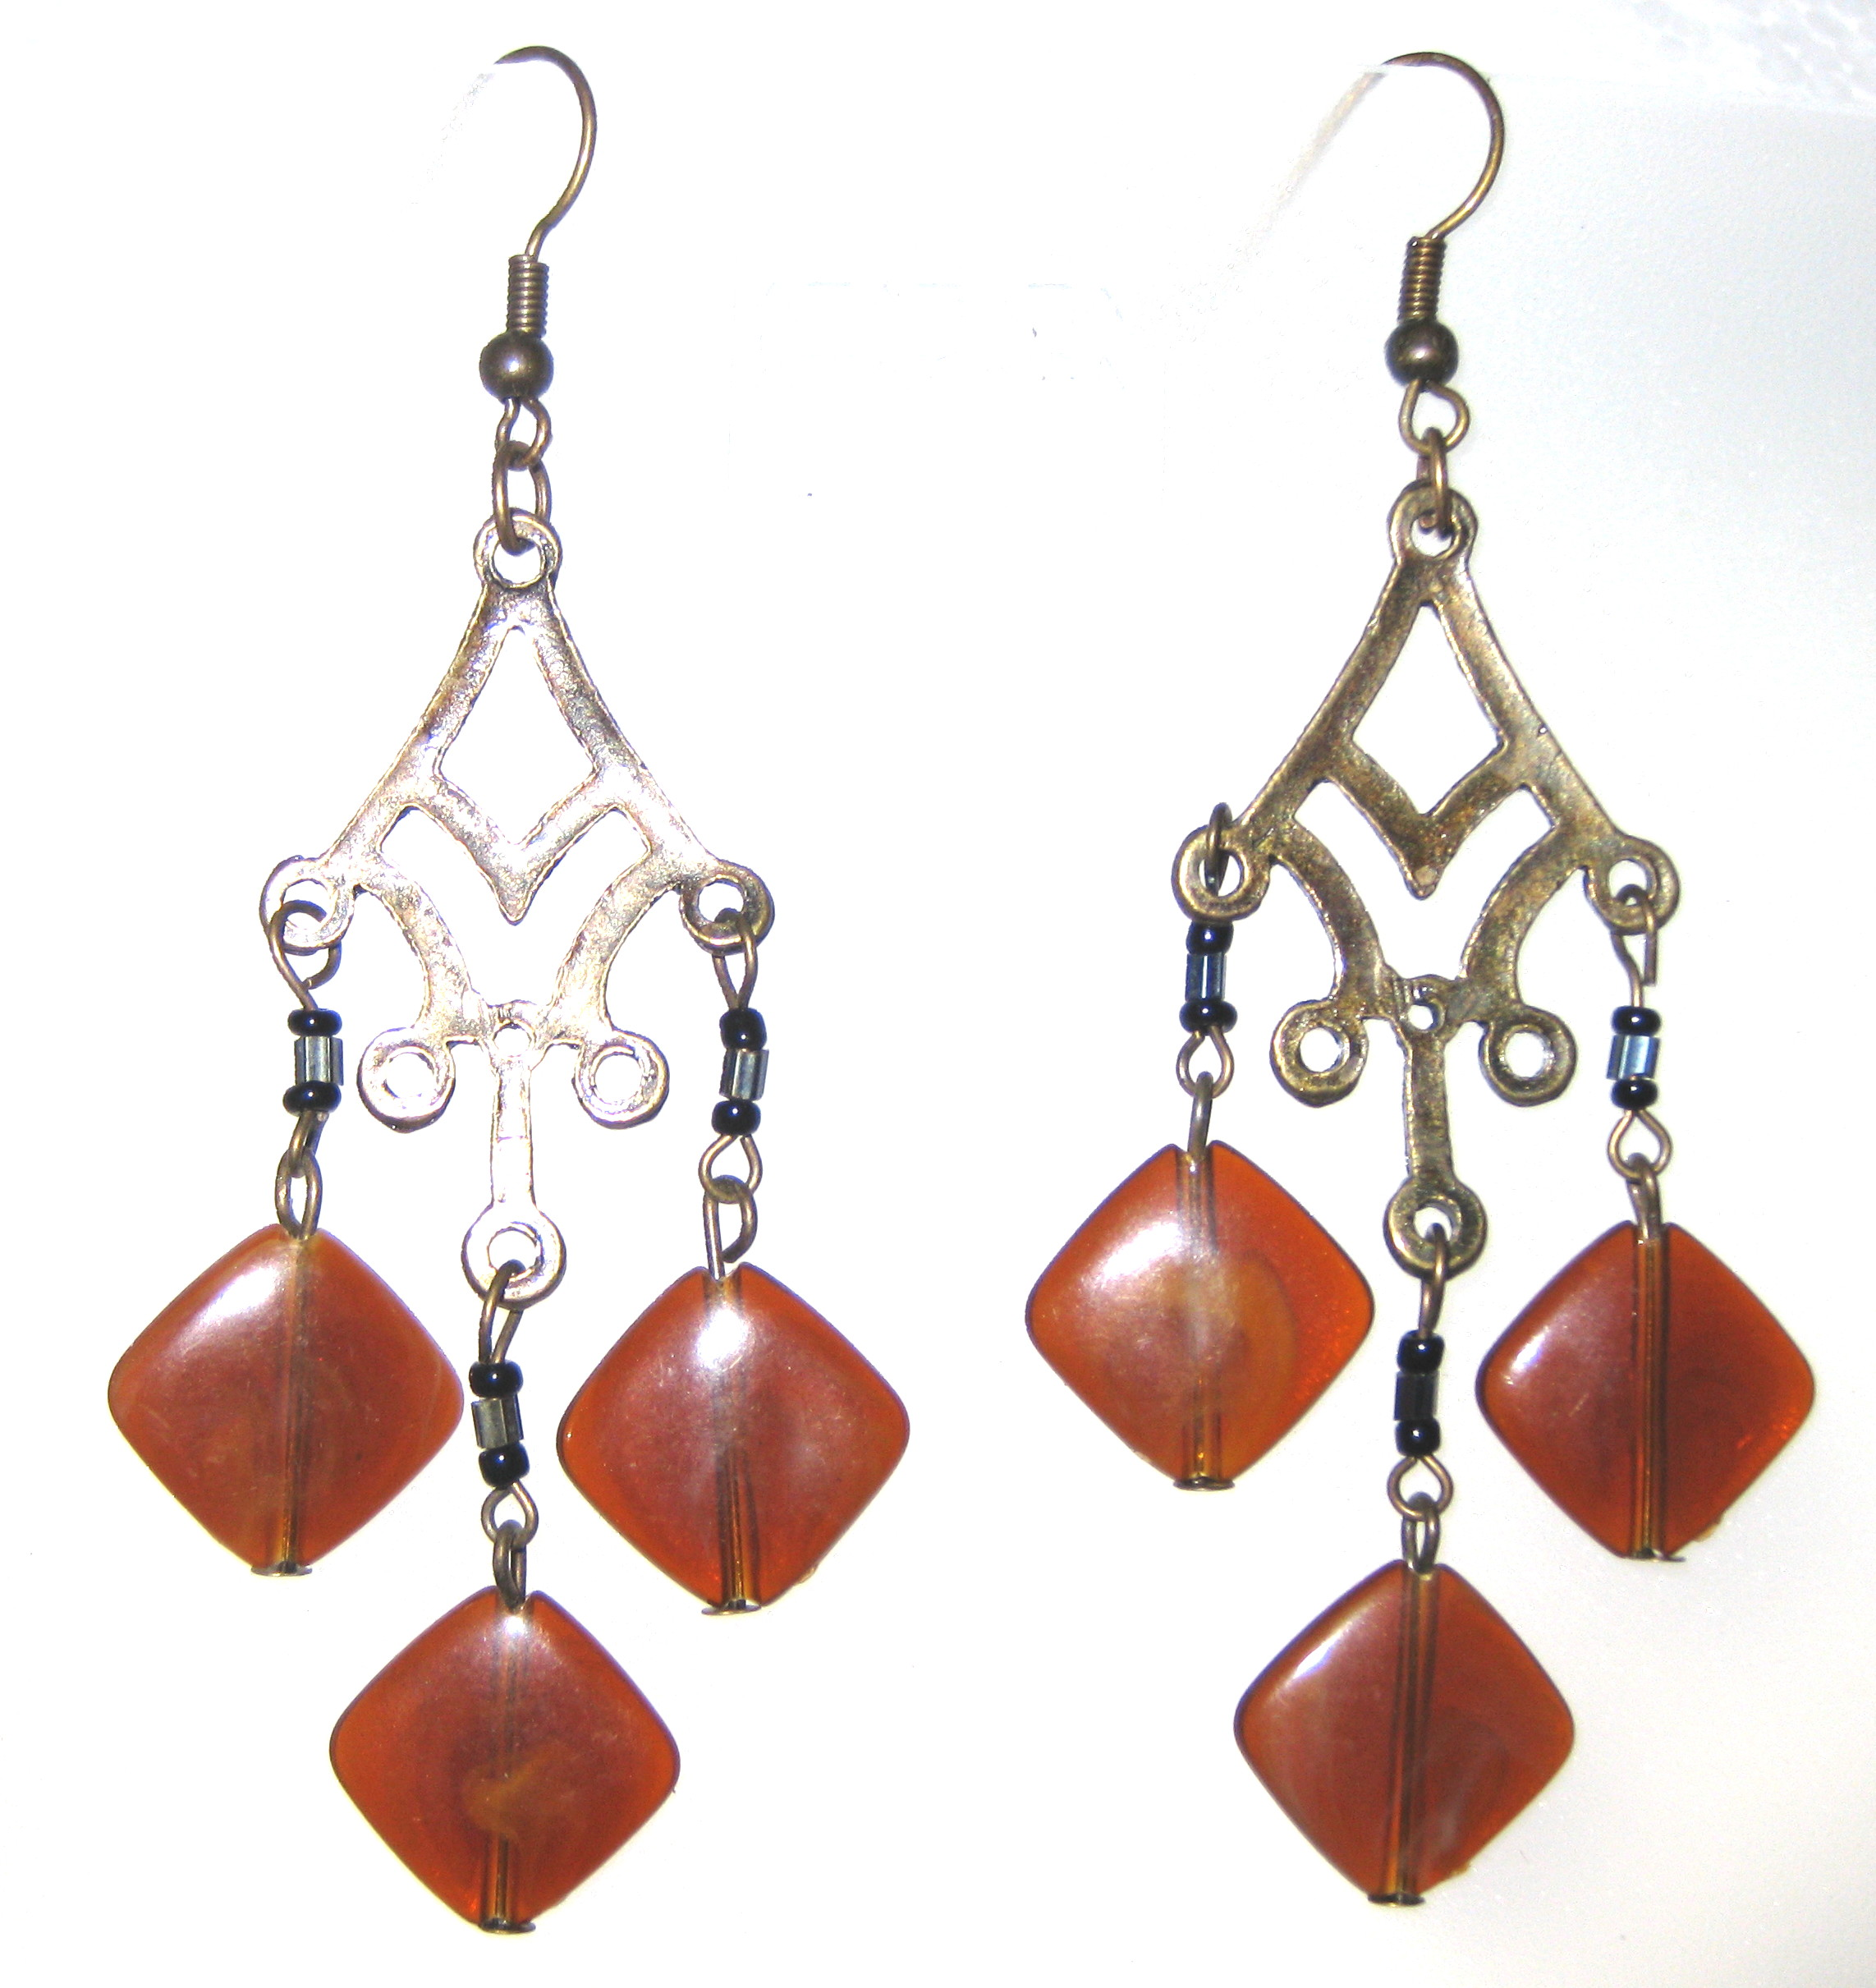 Vintage Chandelier Fashion Earrings -er-fa10